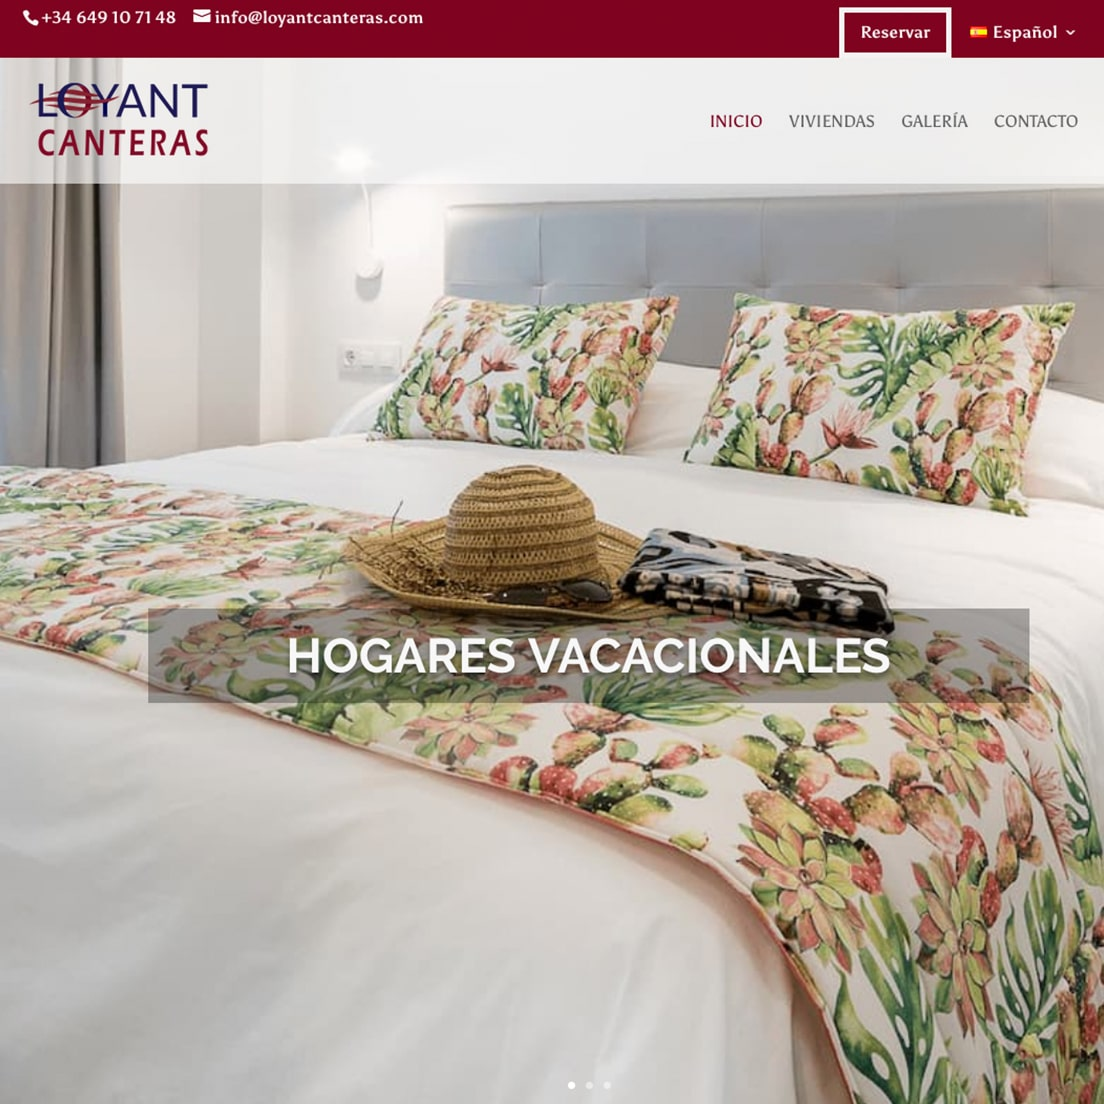 Loyant Canteras